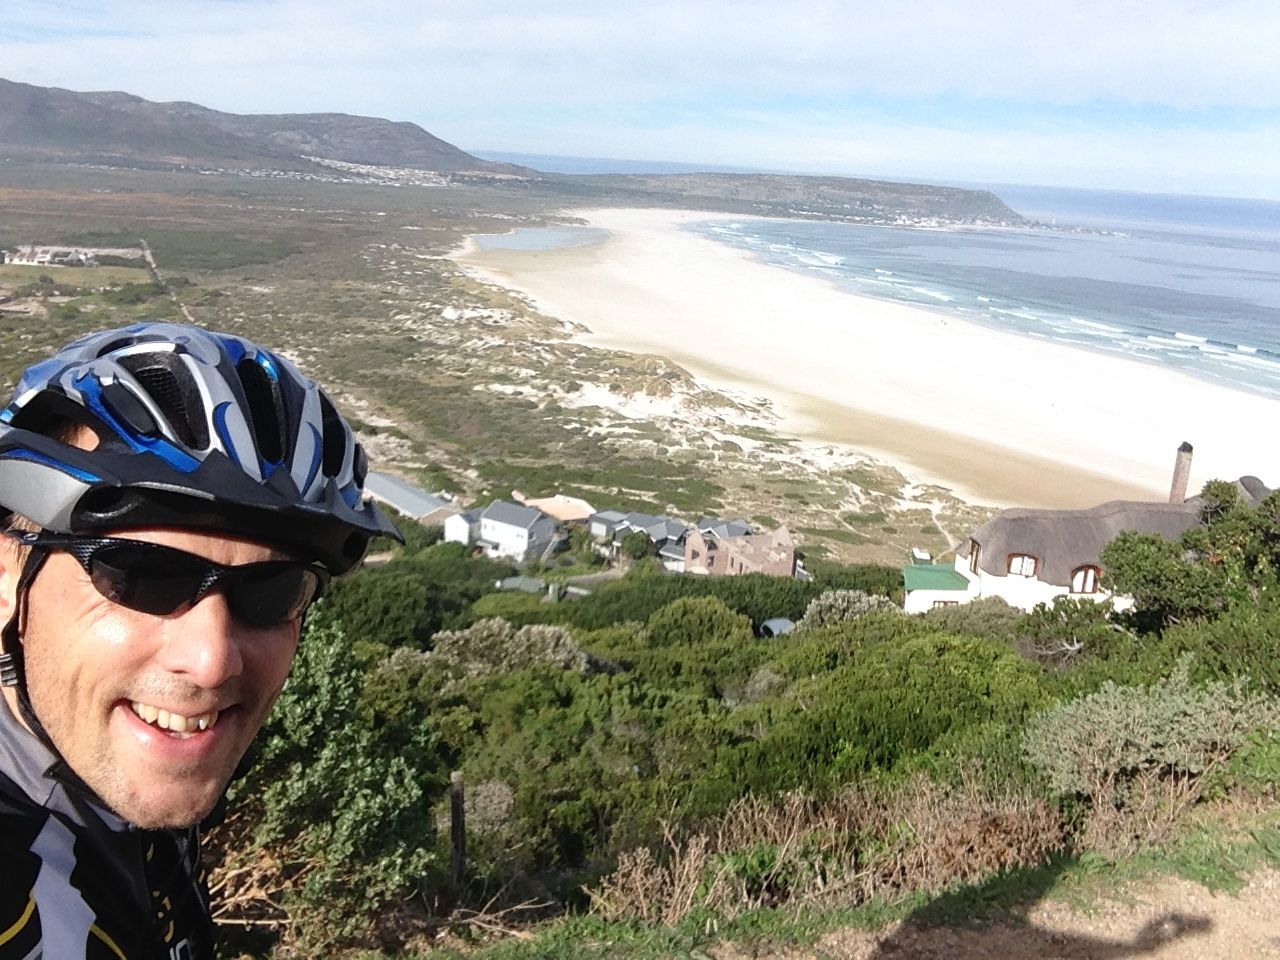 Bike Session 4/2014 – Riding parts of Two Oceans Route – 60 km – 03.05.2014